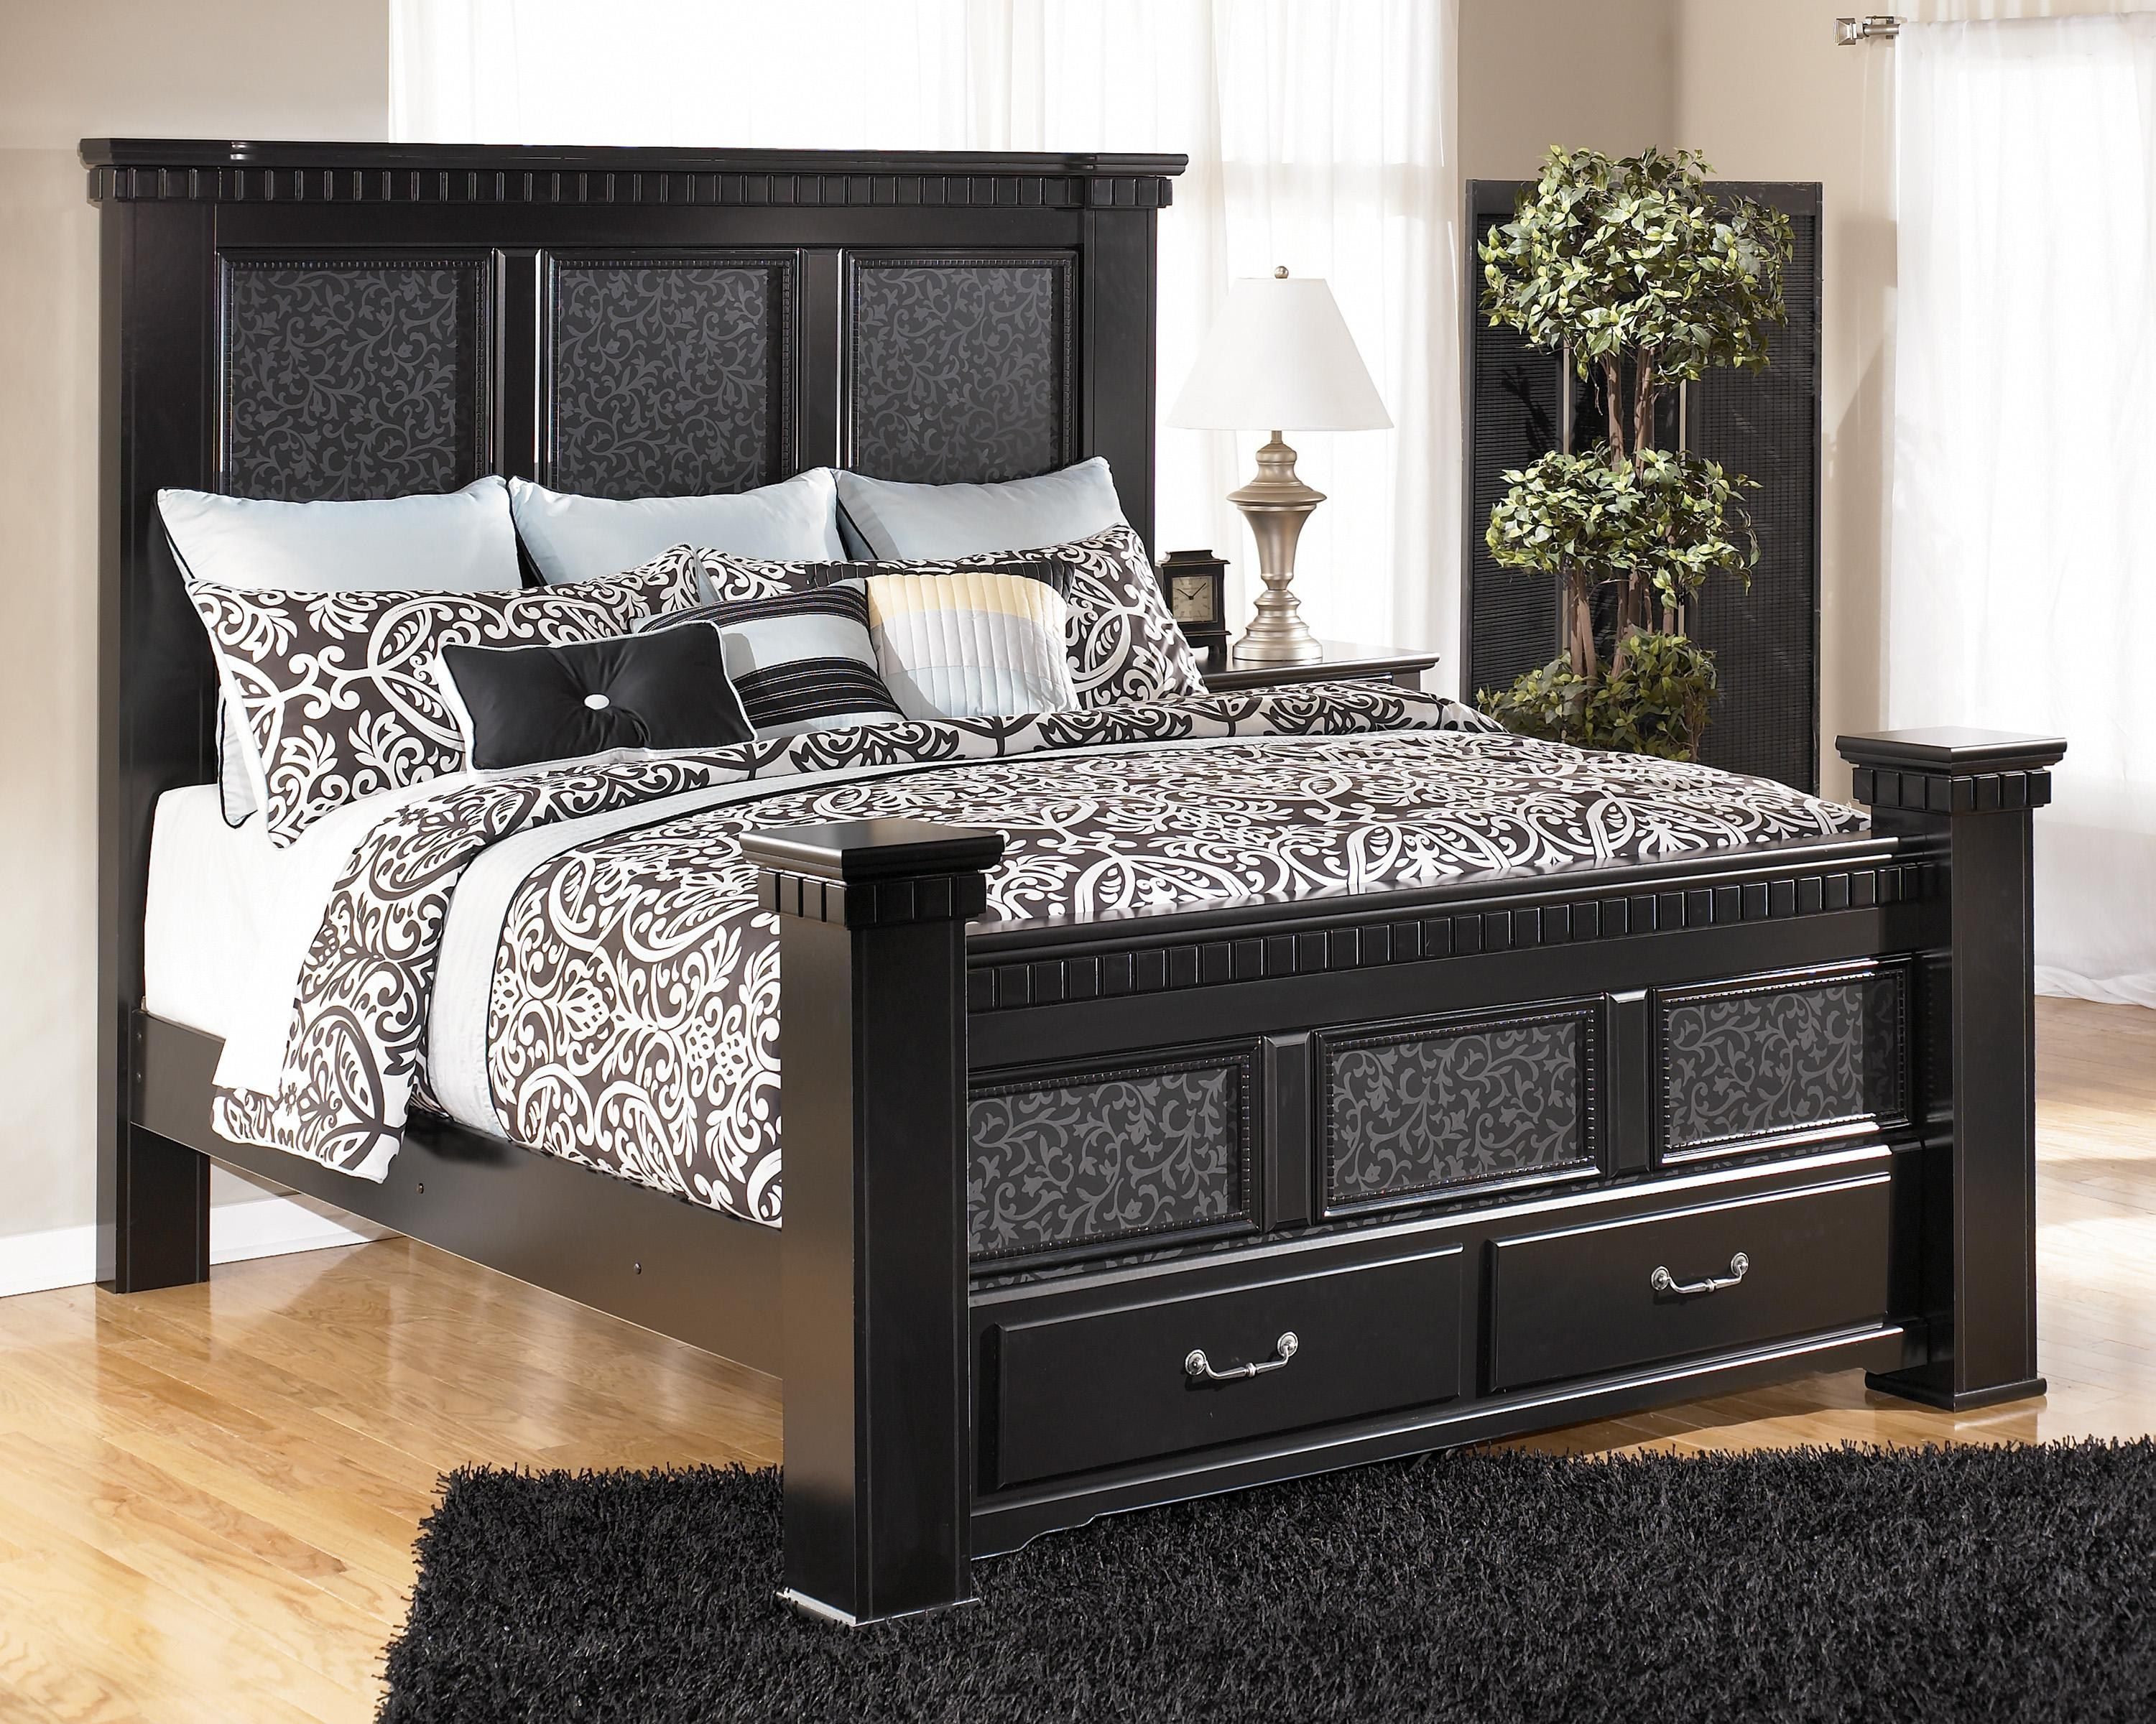 ashley furniture beds are offered to you in some sources before you buy bed for - Ashley Furniture Bed Frames